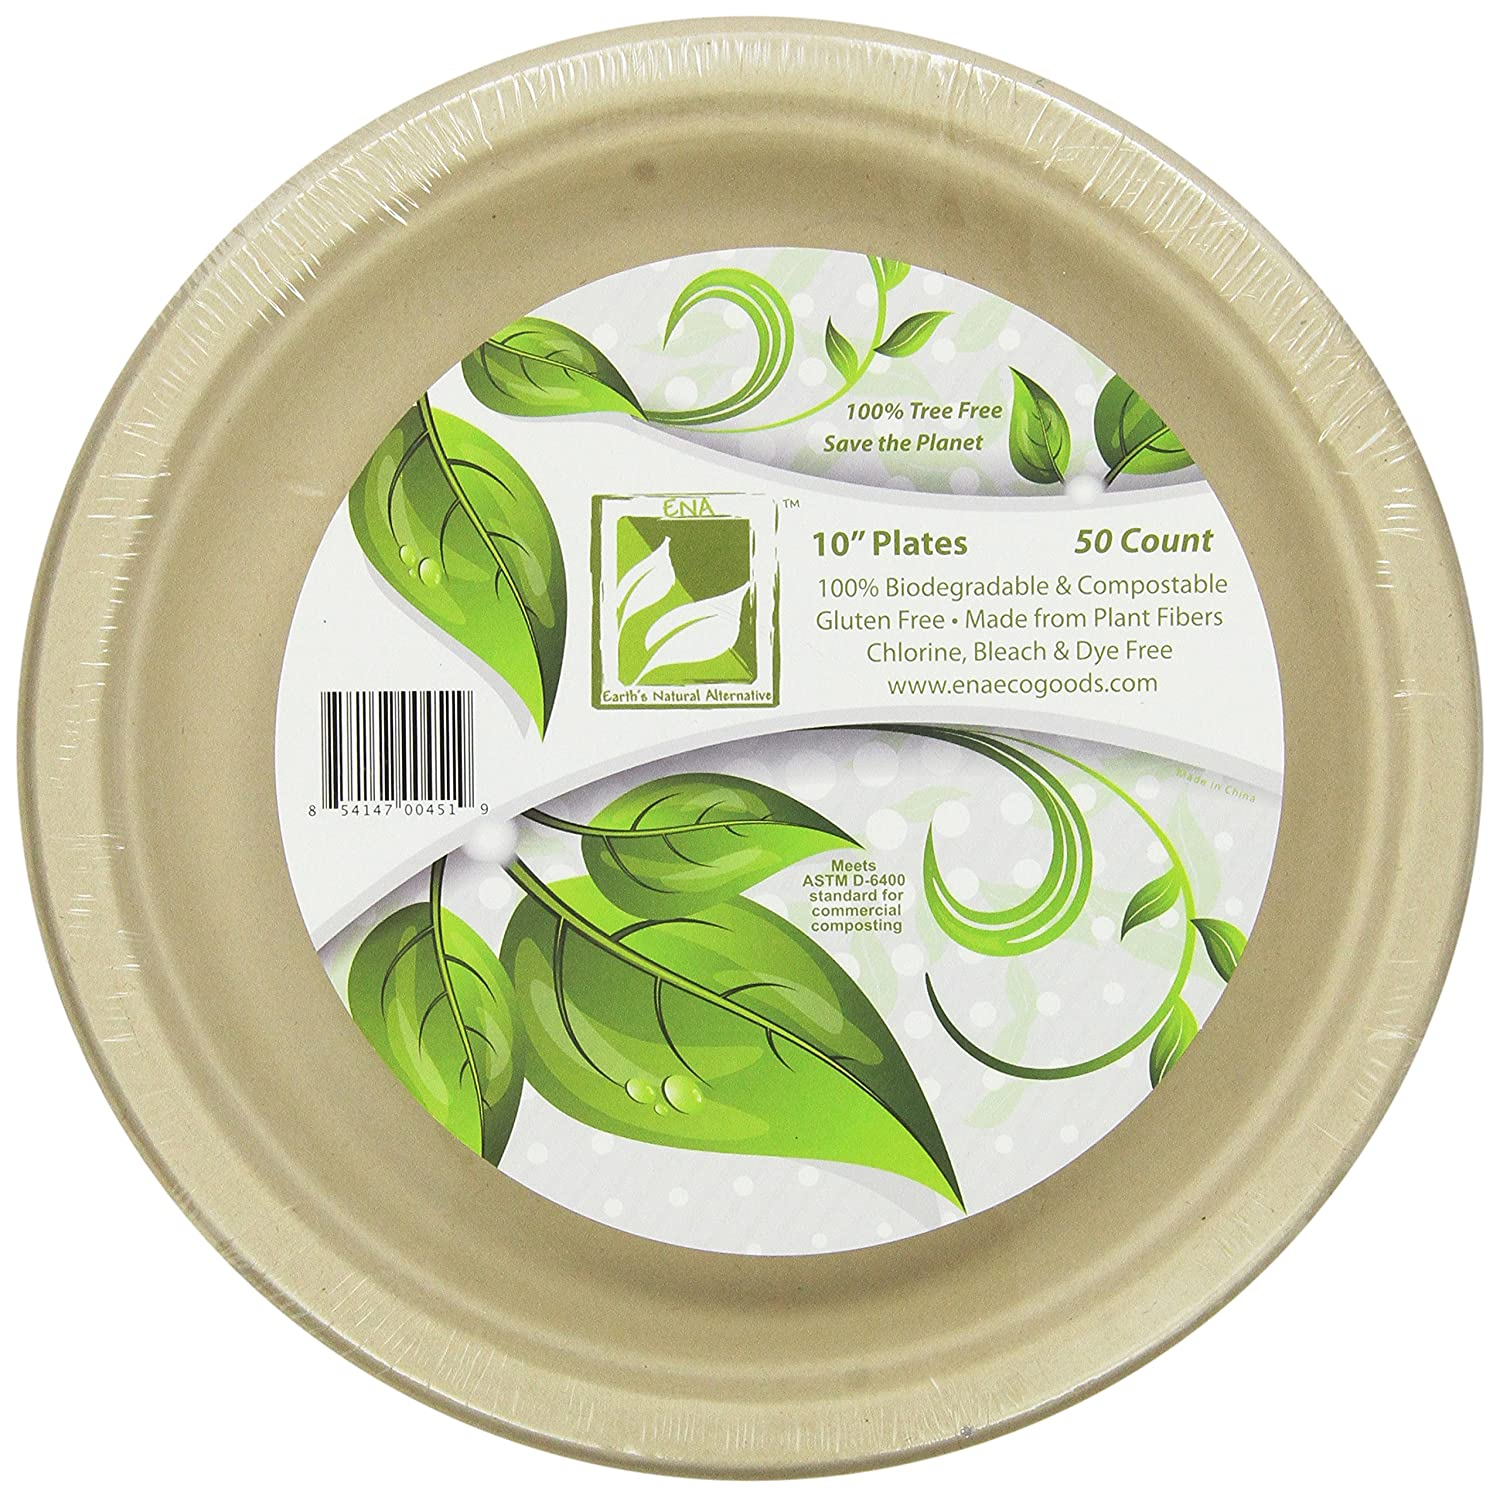 """Earth's Natural Alternative Eco-Friendly, Natural Compostable Plant Fiber 10"""" Plate, Natural, 50 Count"""